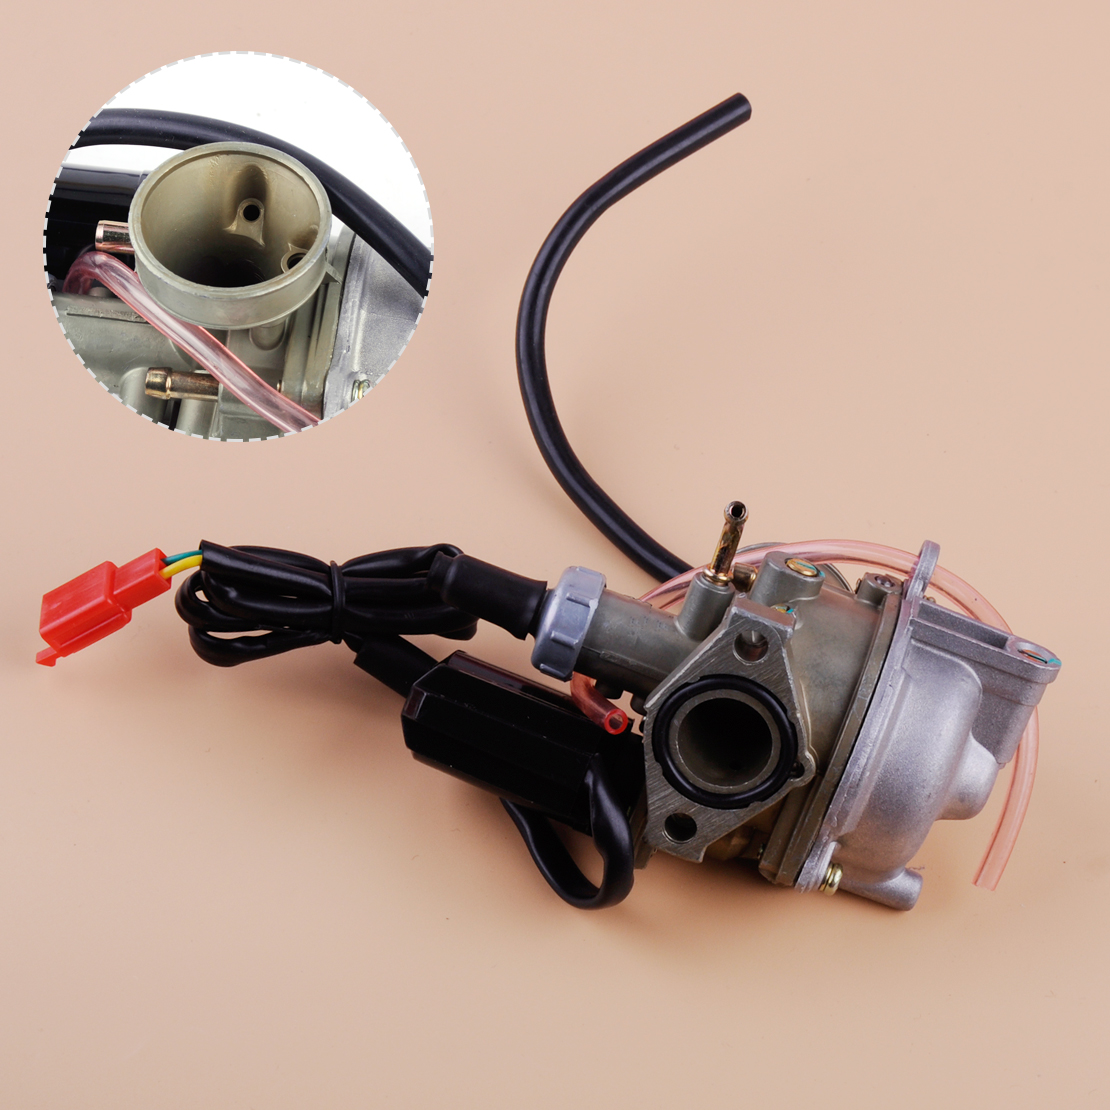 US $29 91 12% OFF|DWCX 2 Pins 19mm Carburetor Carb Fit for Honda 2 Stroke  Engine 50cc Dio 50 ZX34 35 SYM Kymco Scooter-in Carburetors from  Automobiles